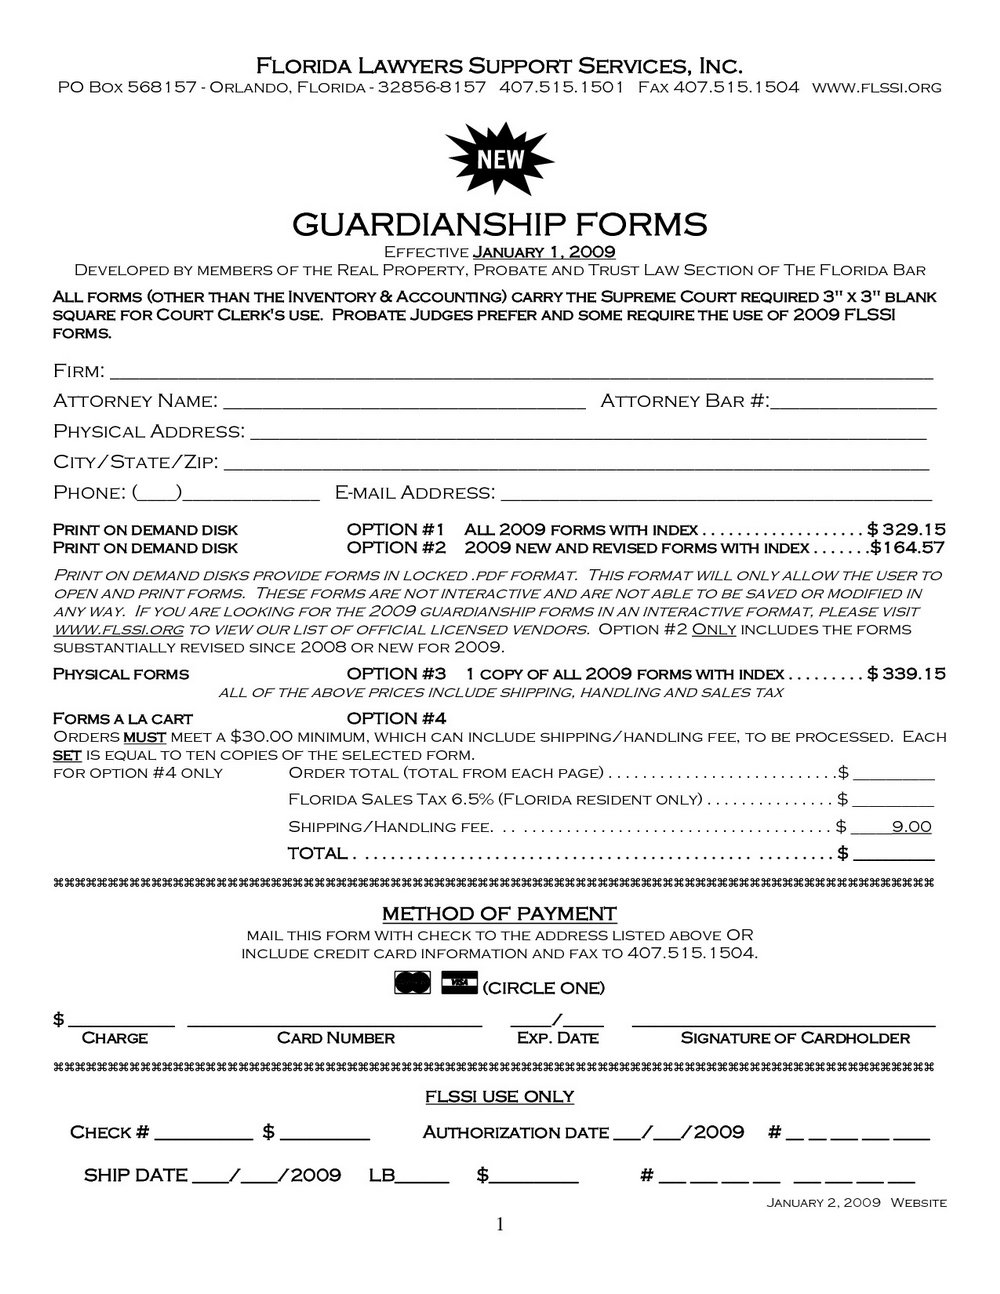 Free Temporary Guardianship Forms Arizona